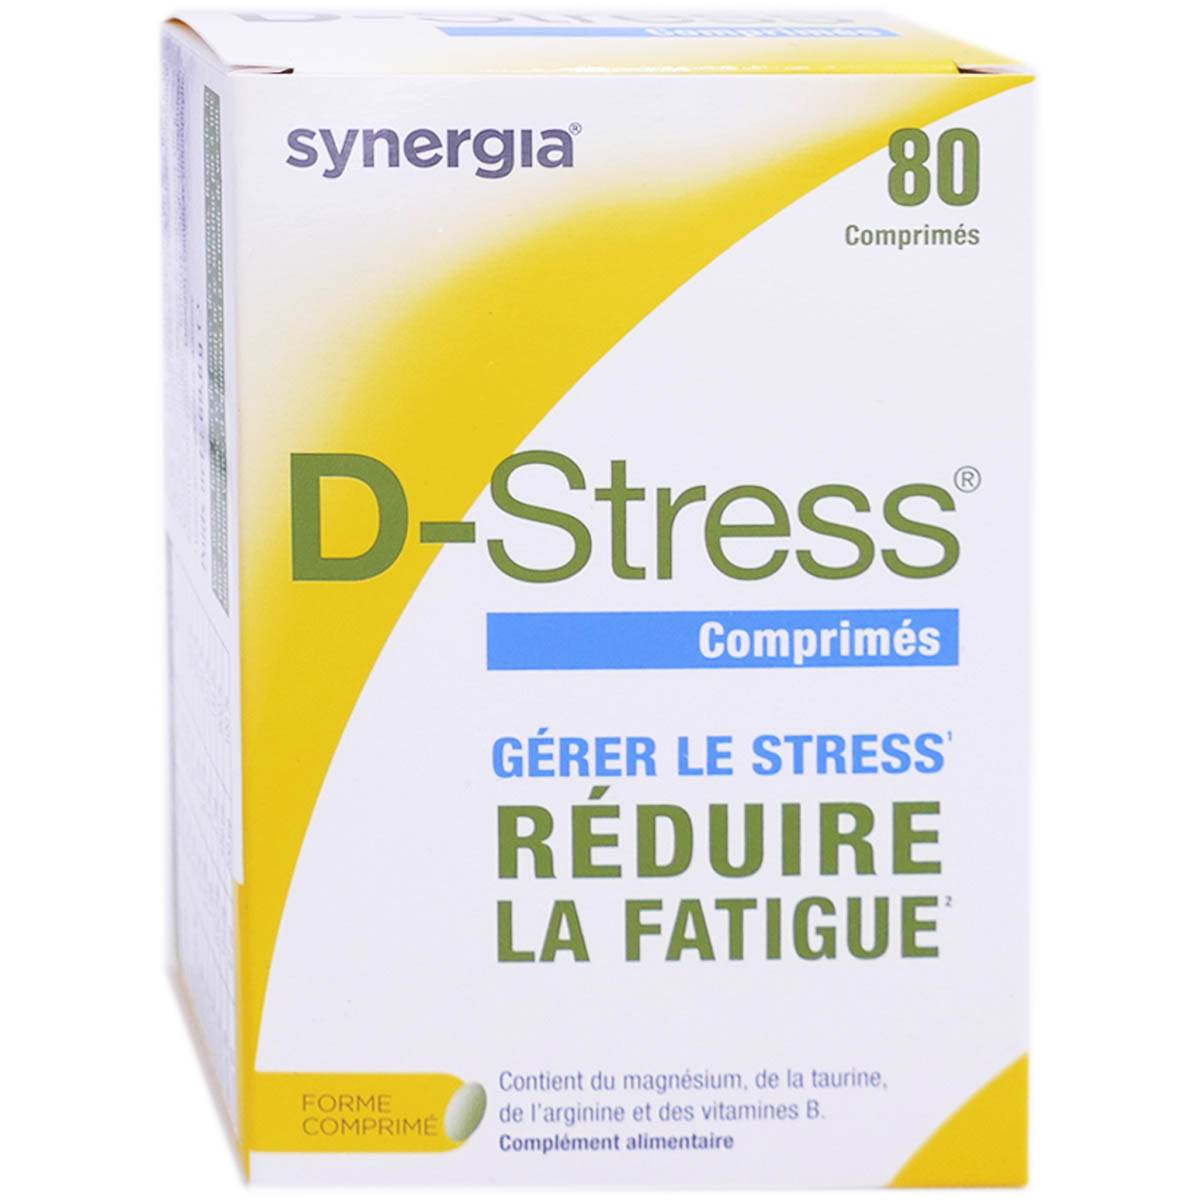 Synergia dstress 80 comprimes